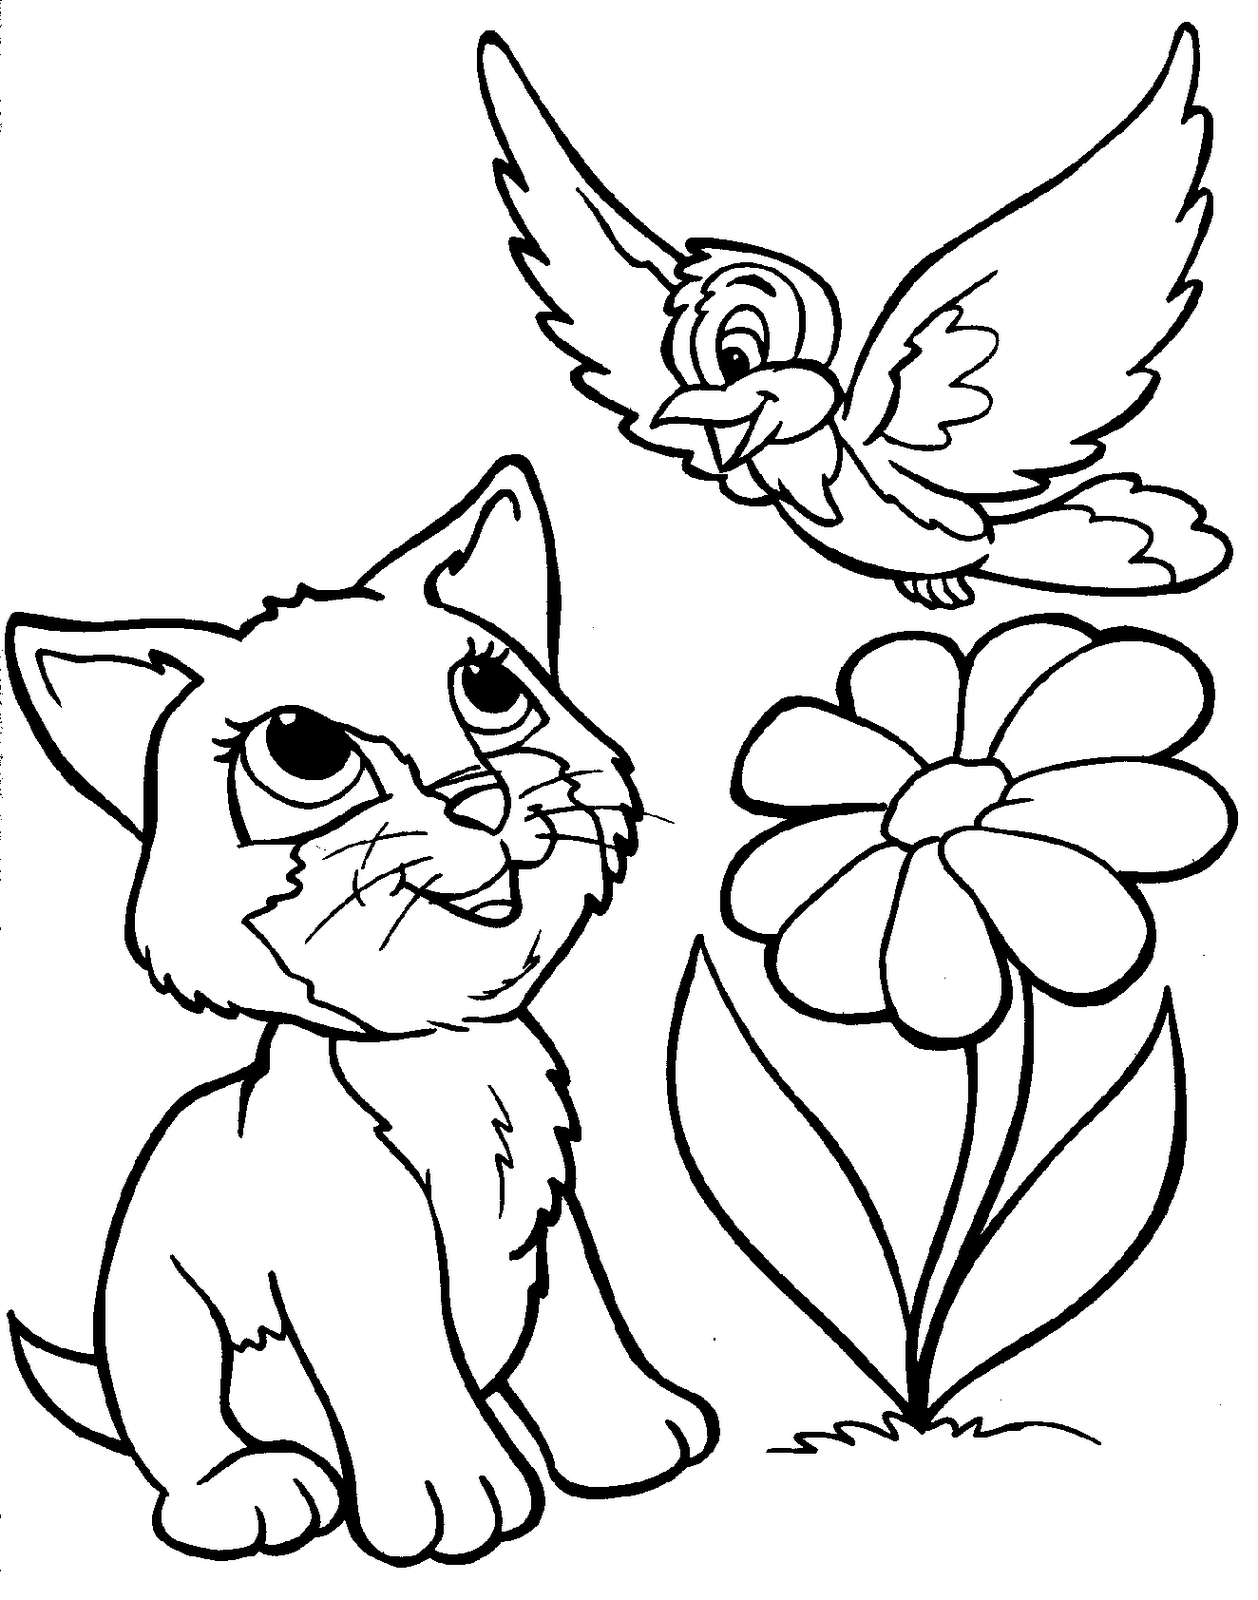 10 Cute Animals Coloring Pages gt;gt; Disney Coloring Pages ...